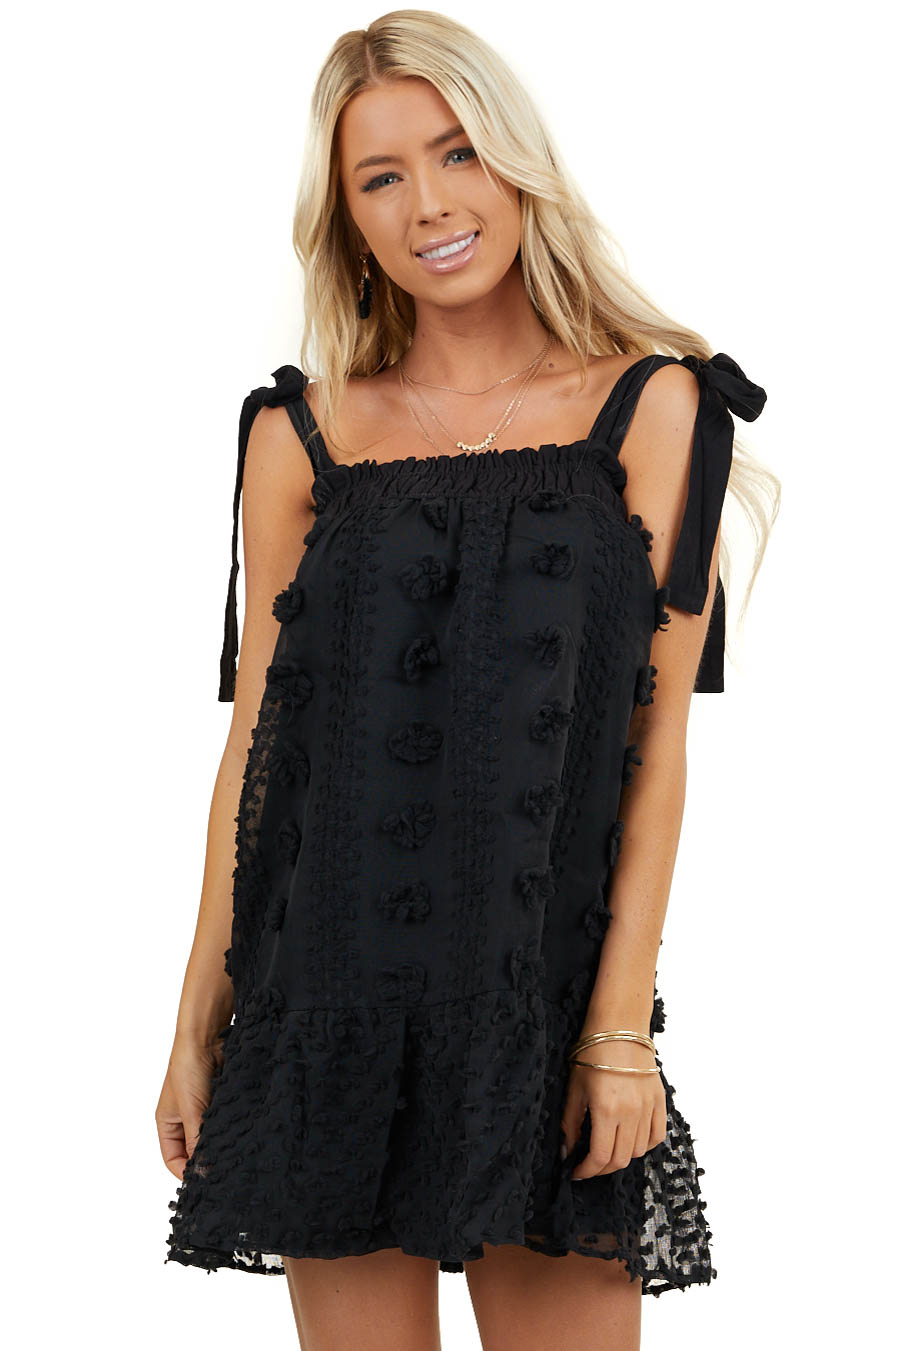 Black Textured Sleeveless Mini Dress with Tie Straps